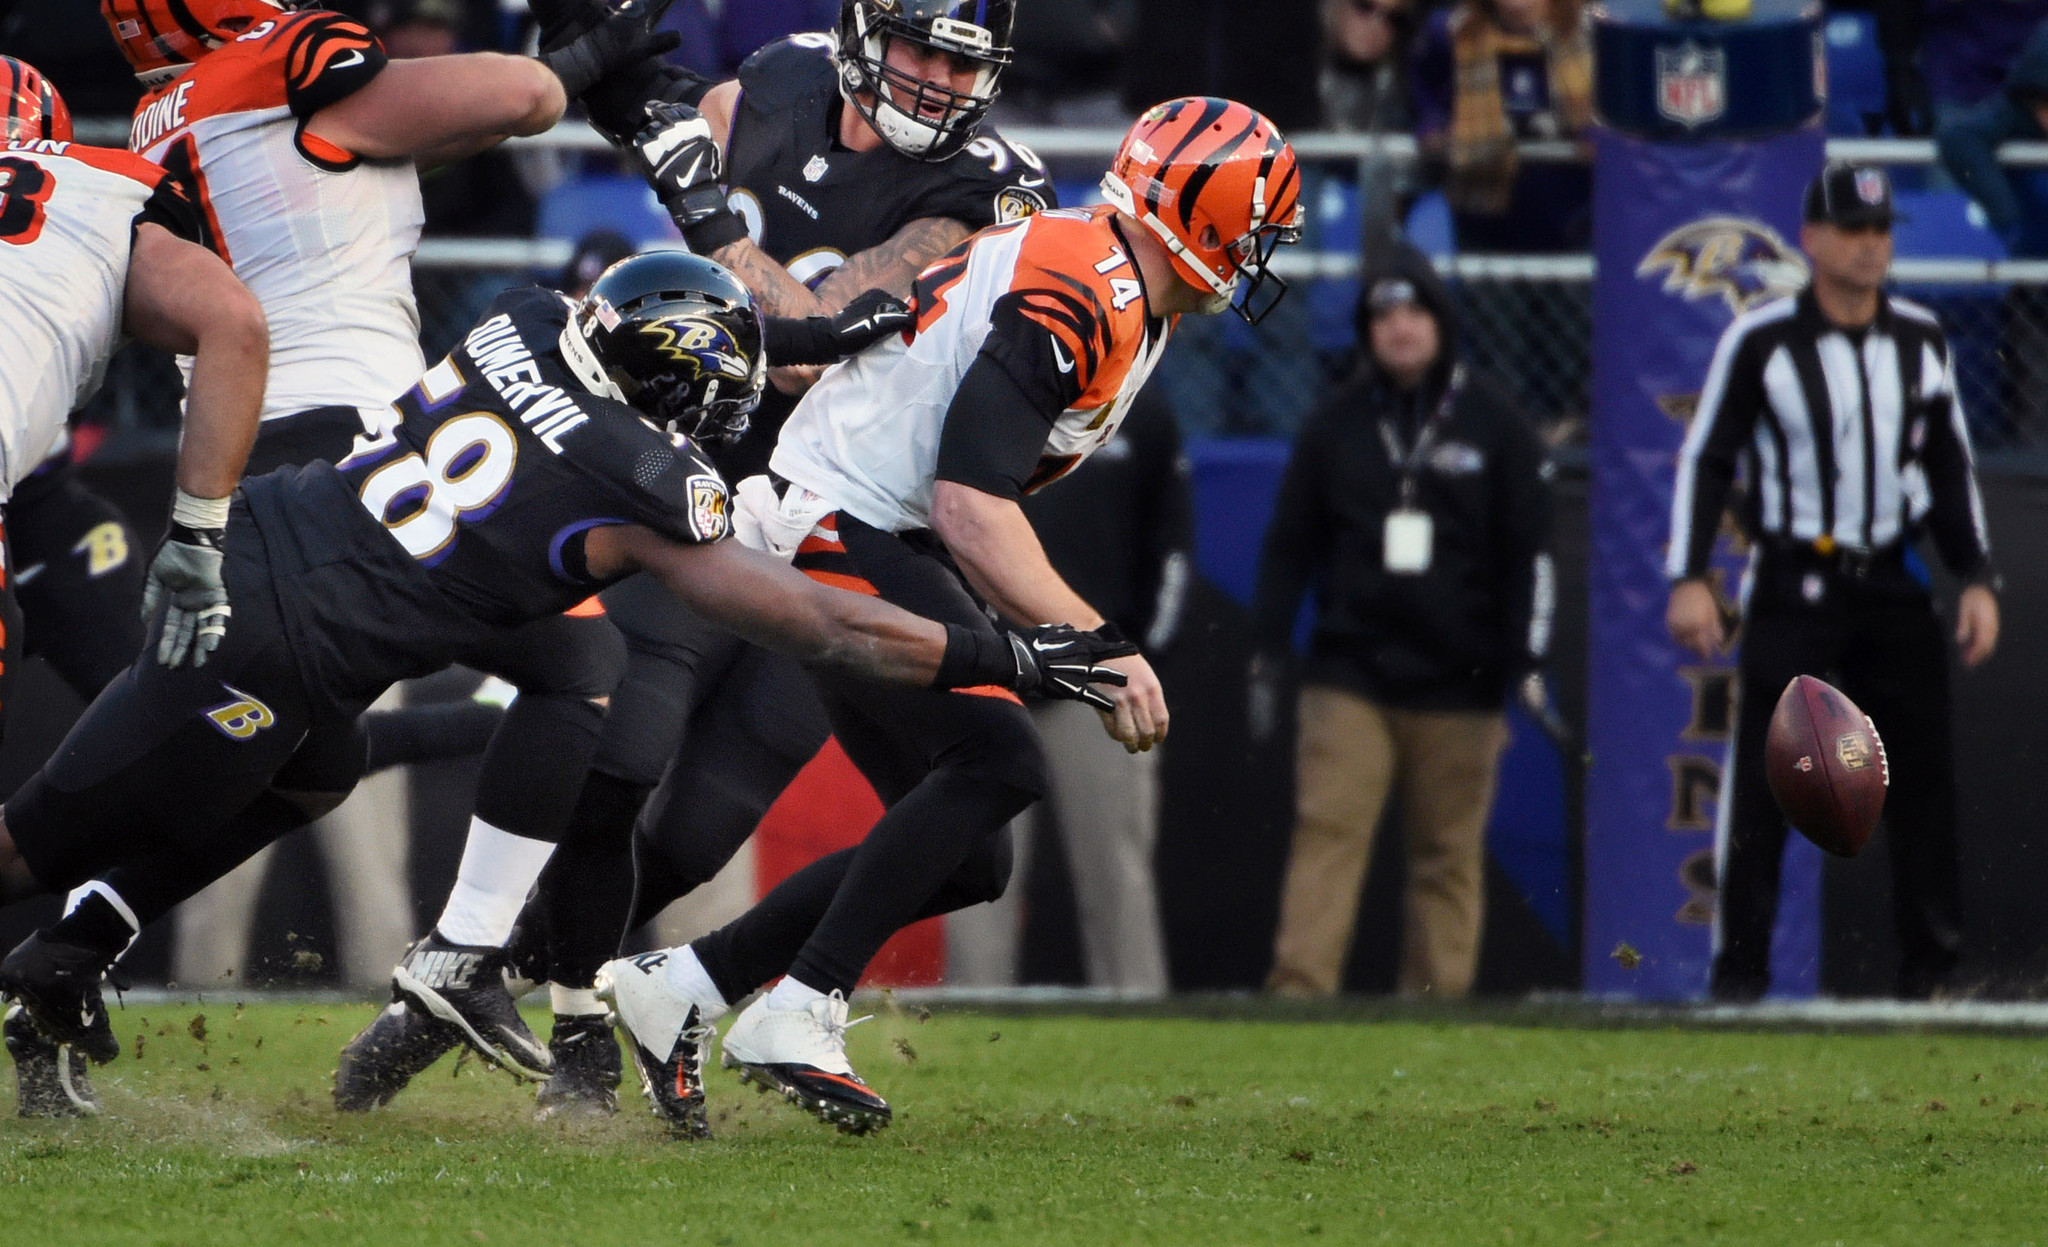 Bal-no-setback-for-ravens-outside-linebacker-elvis-dumervil-foot-in-first-game-in-nearly-two-months-20161130